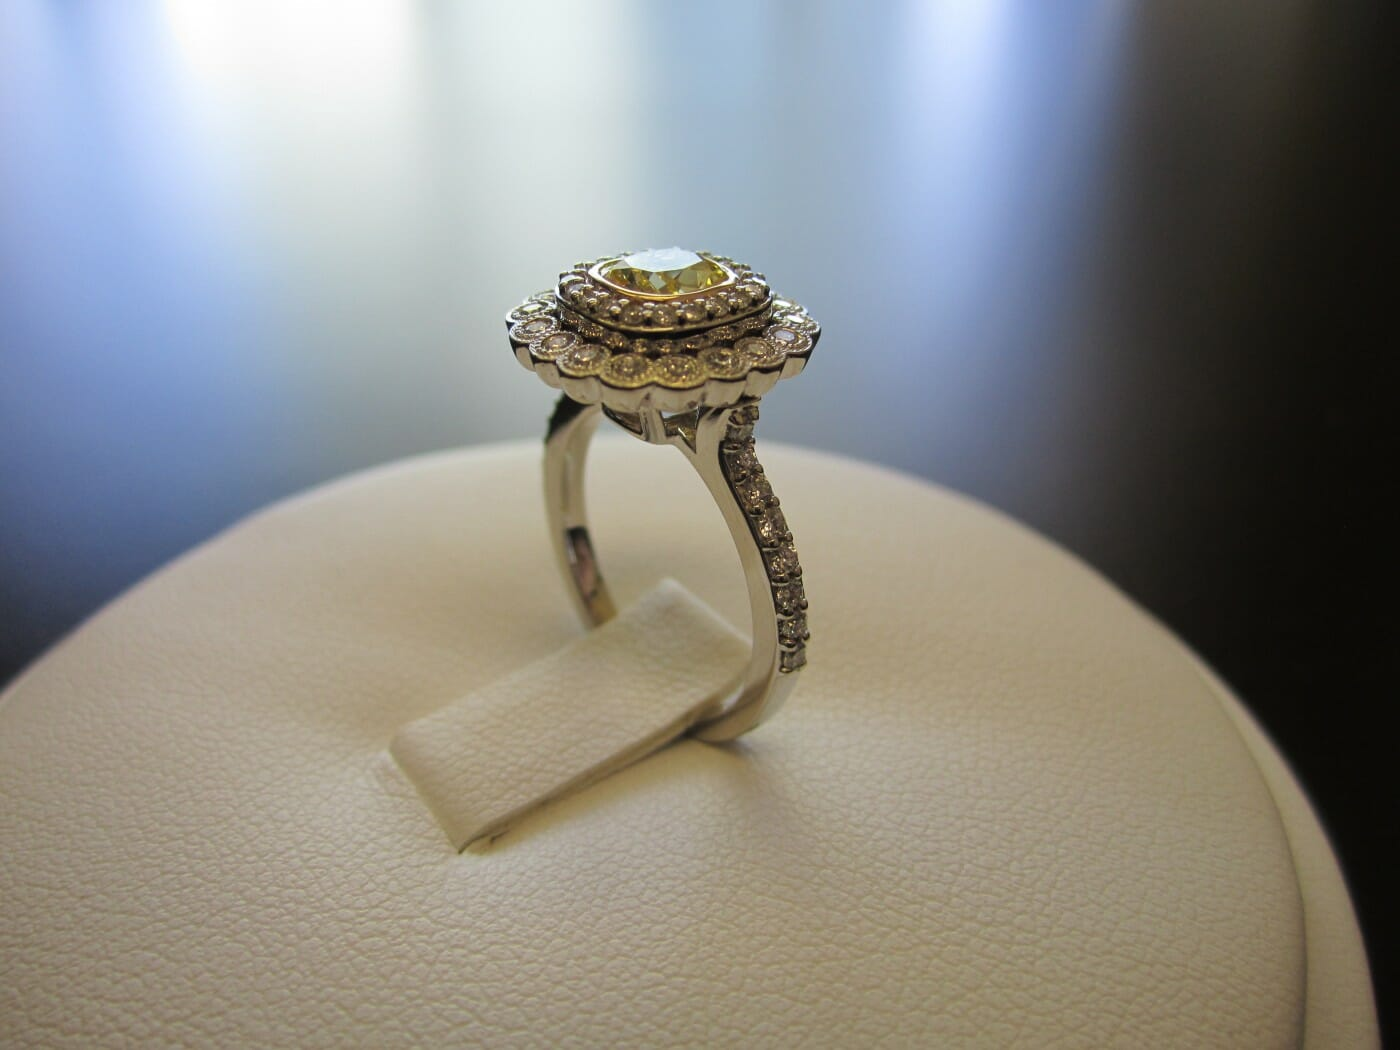 Picture of What Do You Do with a Useless Engagement Ring? Here are 5 Ideas